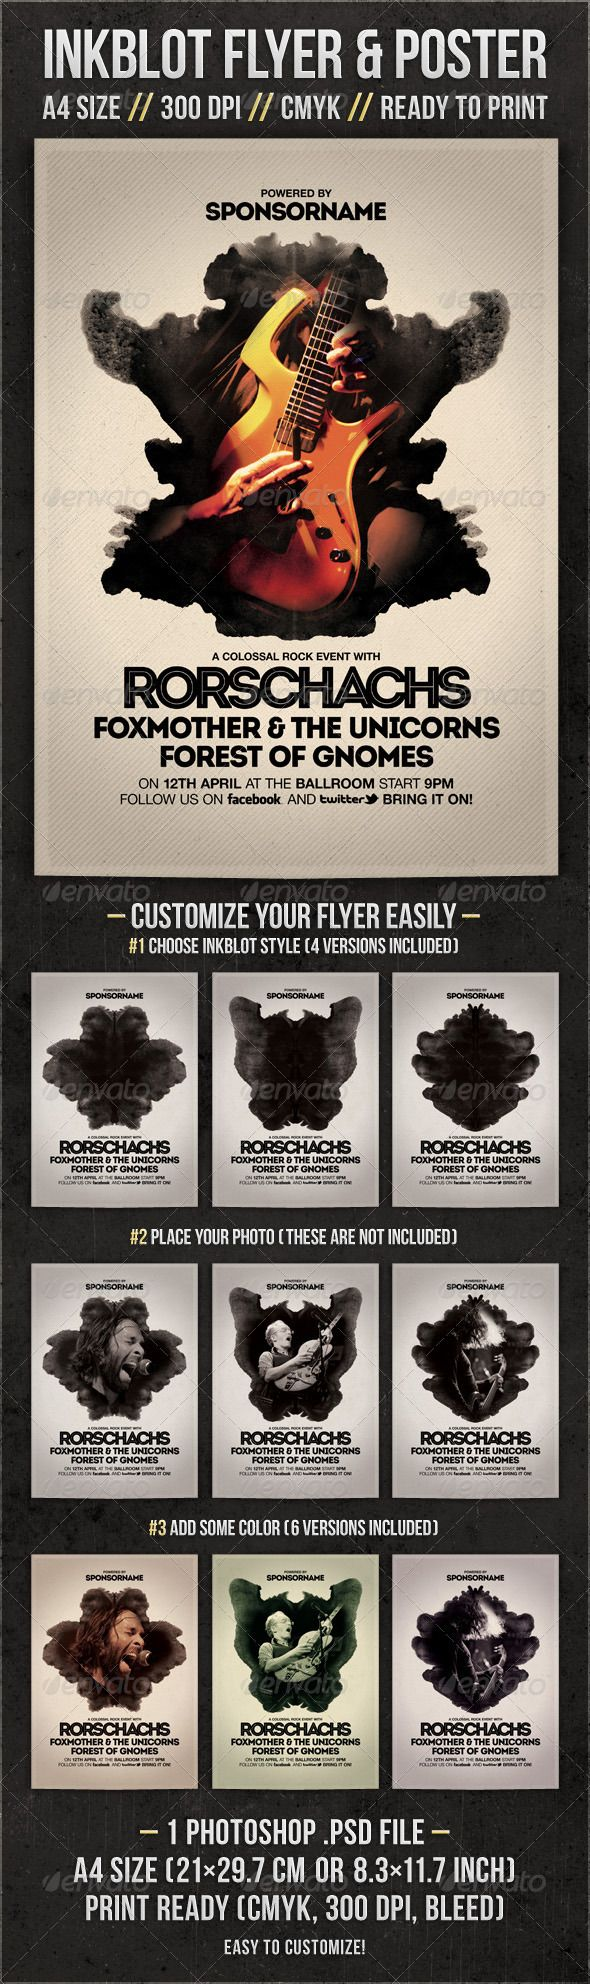 Inkblot Rock Flyer & Poster  #GraphicRiver           Inkblot Rock Flyer & Poster Template   1 Photoshop .psd file (made with CS5, compatible with CS4 and CS3)  A4 size (21×29.7 cm) or (8.3×11.7 inch) with Bleed (21.5×30.2 cm) or (8.5×11.9 inch)  Pixel Dimensions: 2539×3567 px  Print Ready (CMYK, 300 DPI, Bleed)  Quick Photo Replacement with Smart Objects  Layers are labeled, color coded and organized in groups for easy navigation.  Free photos, fonts and textures used (links in the help…